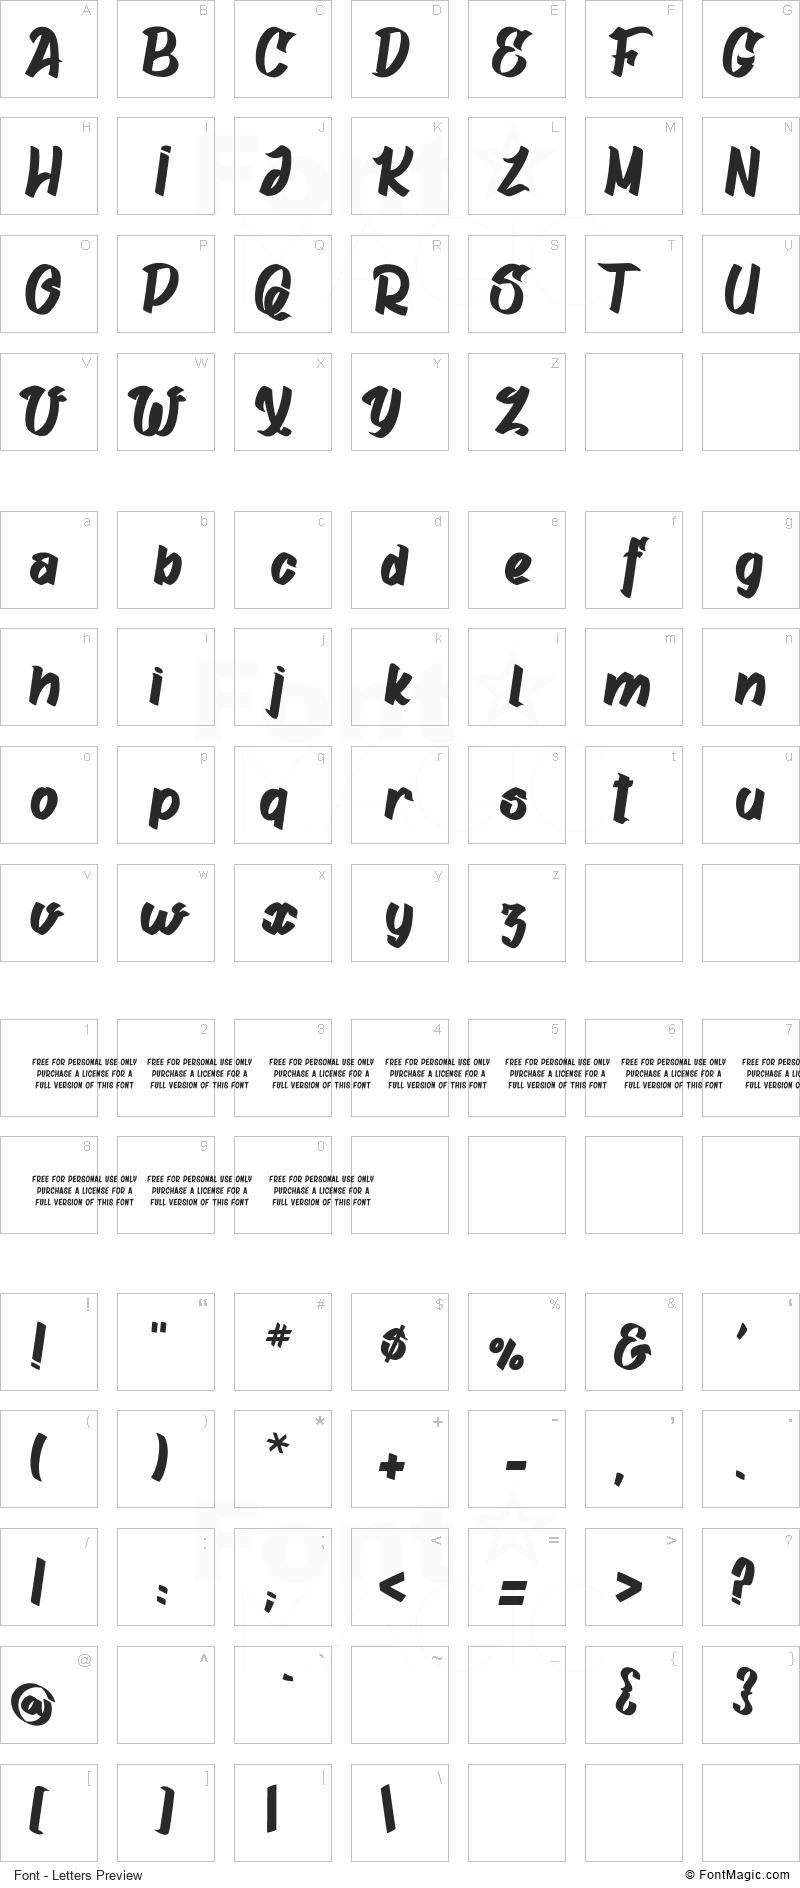 Gatalike Font - All Latters Preview Chart